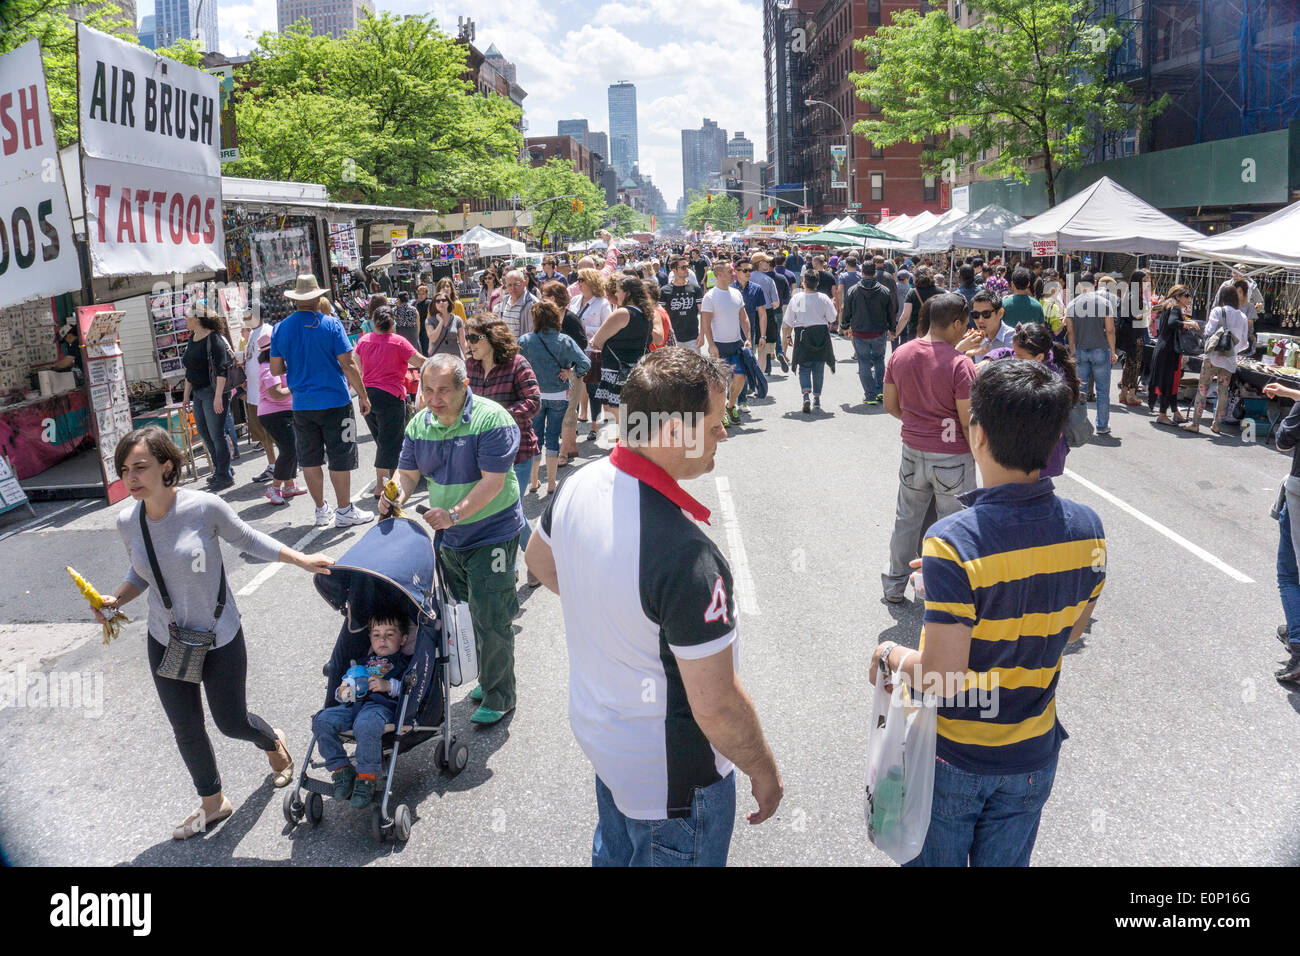 Hells Kitchen, New York City, Saturday, May 17 2014, USA: opening day of 2 day weekend 9th Avenue International Food Festival. Inaugurated in 1973, the festival extends from 57th to 42nd street along Ninth Avenue in New York's Hells Kitchen neighborhood. Credit:  Dorothy Alexander/Alamy Live News - Stock Image